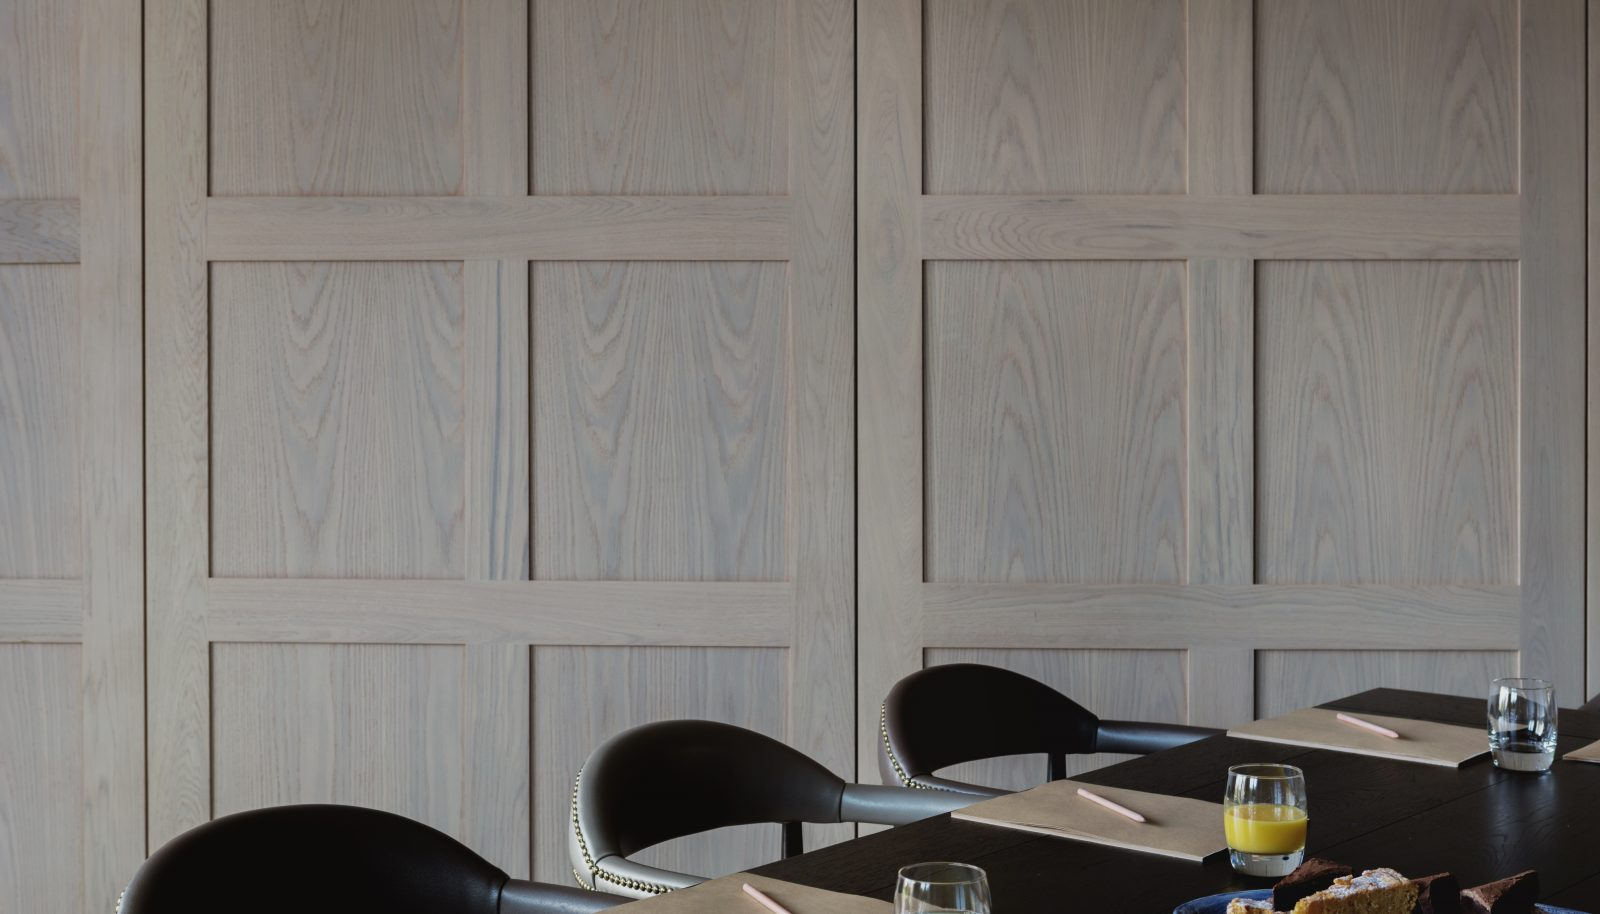 paneled wall in boardroom with notepads and breakfast